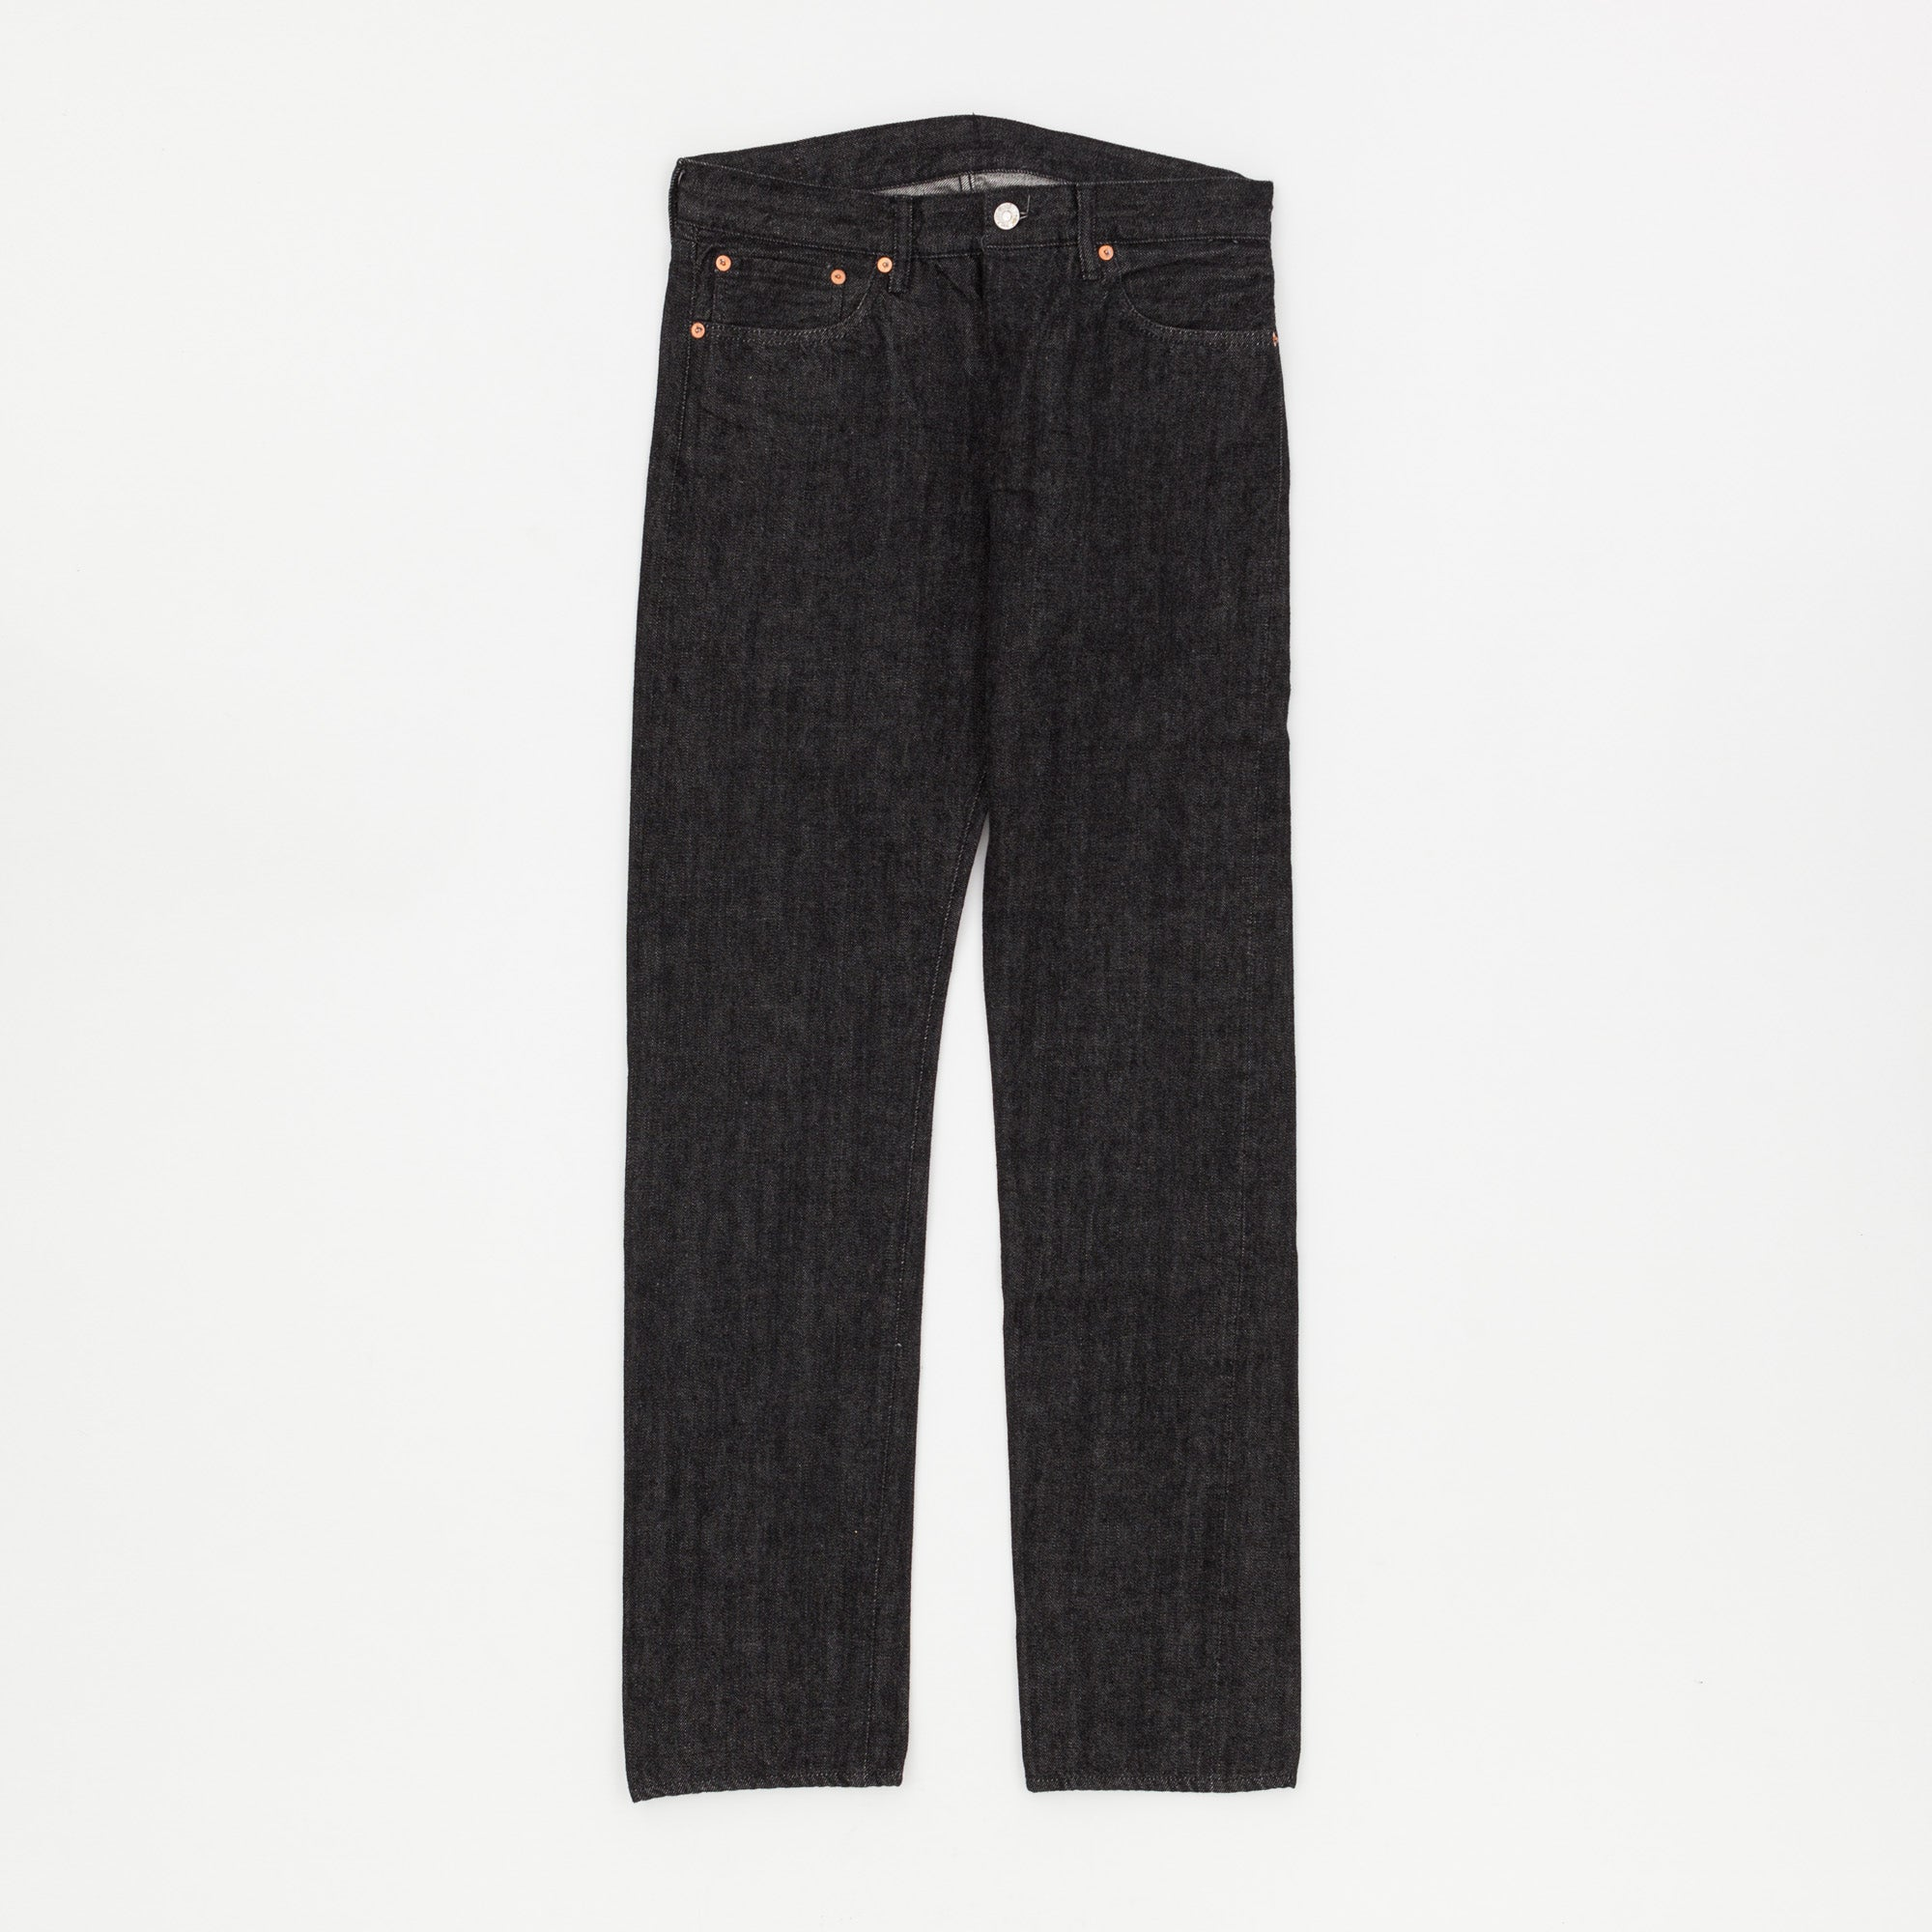 TCB 13.5oz Slim Fit 50's Selvedge Denim